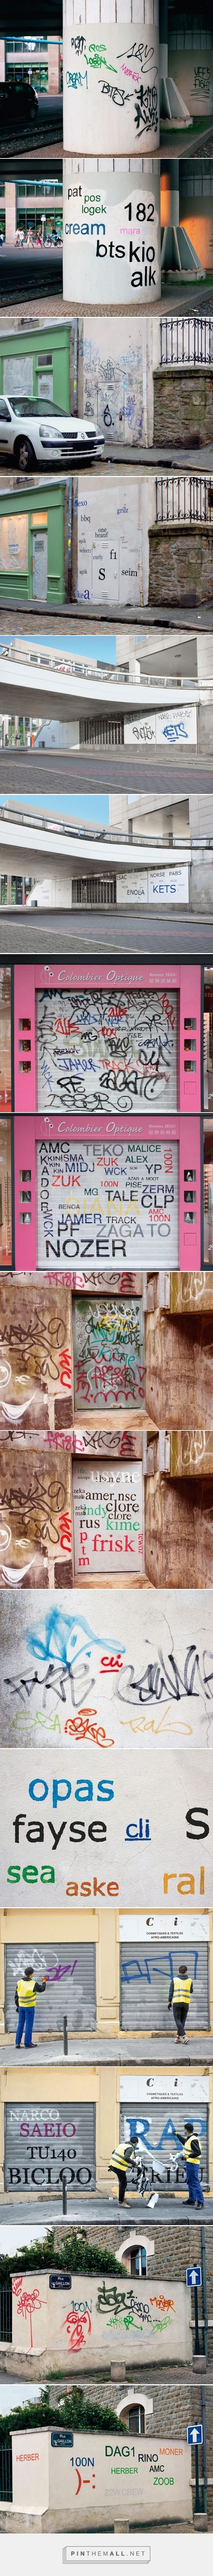 Best Street Art General Images On Pinterest Street Art - Guy paints over graffiti and rewrites them in a more legible way